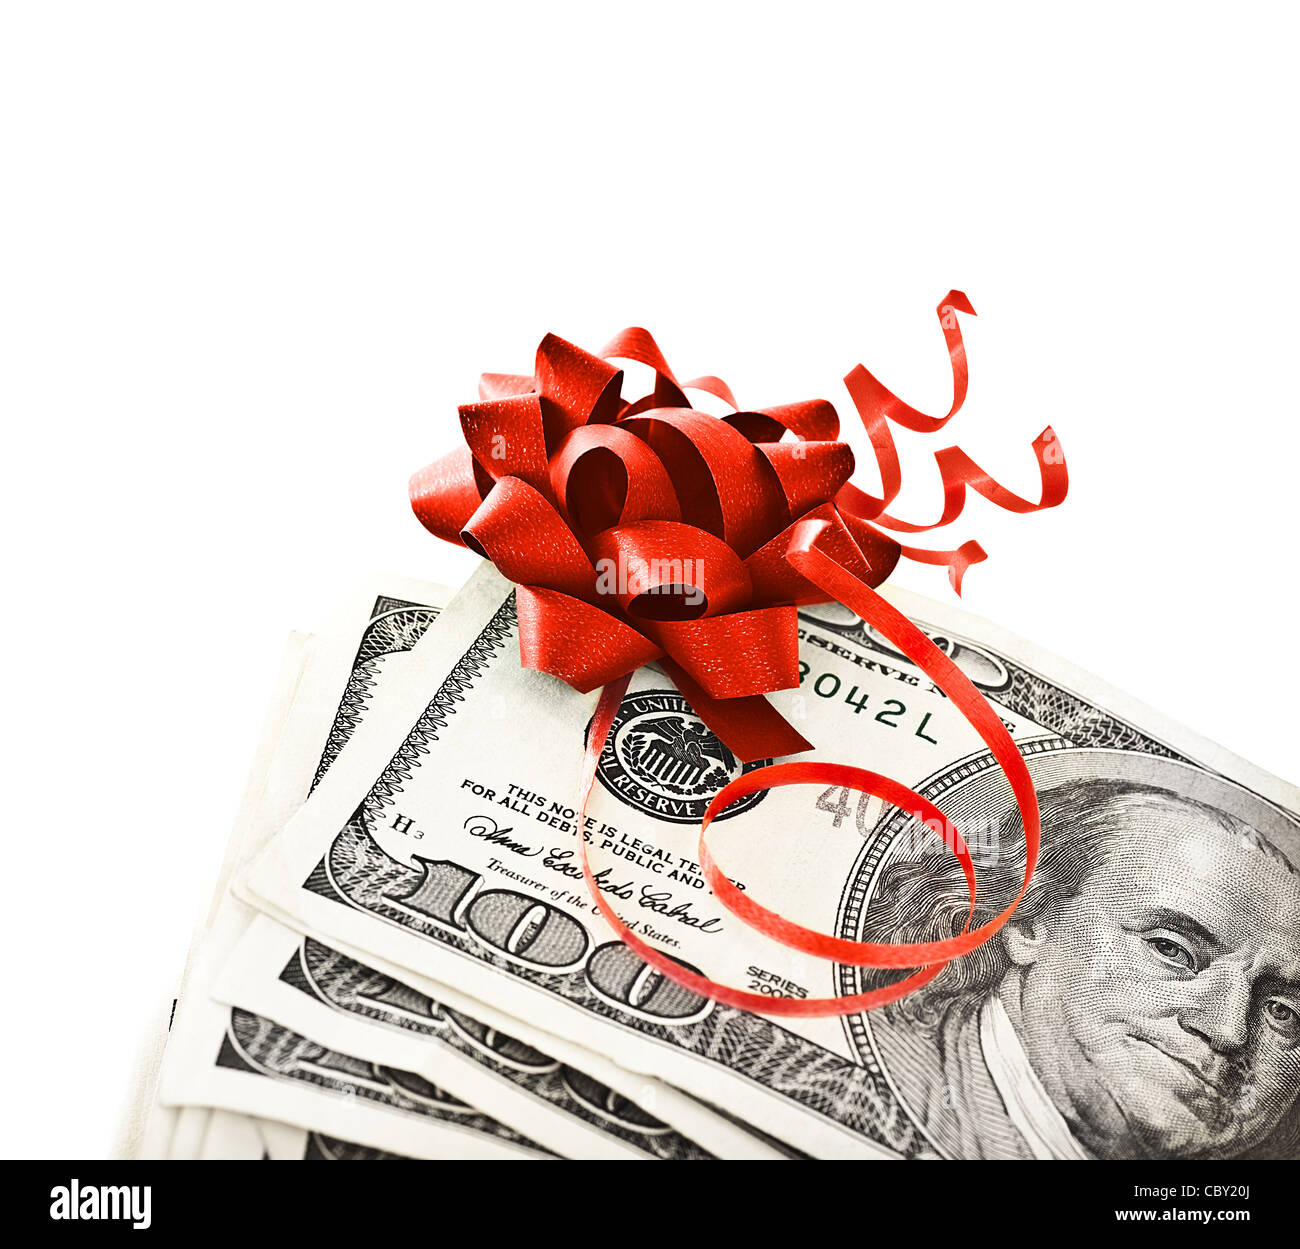 Money, gift wrapped in red bow and ribbon, one hundred dollars banknotes, US currency as cash isolated on white - Stock Image